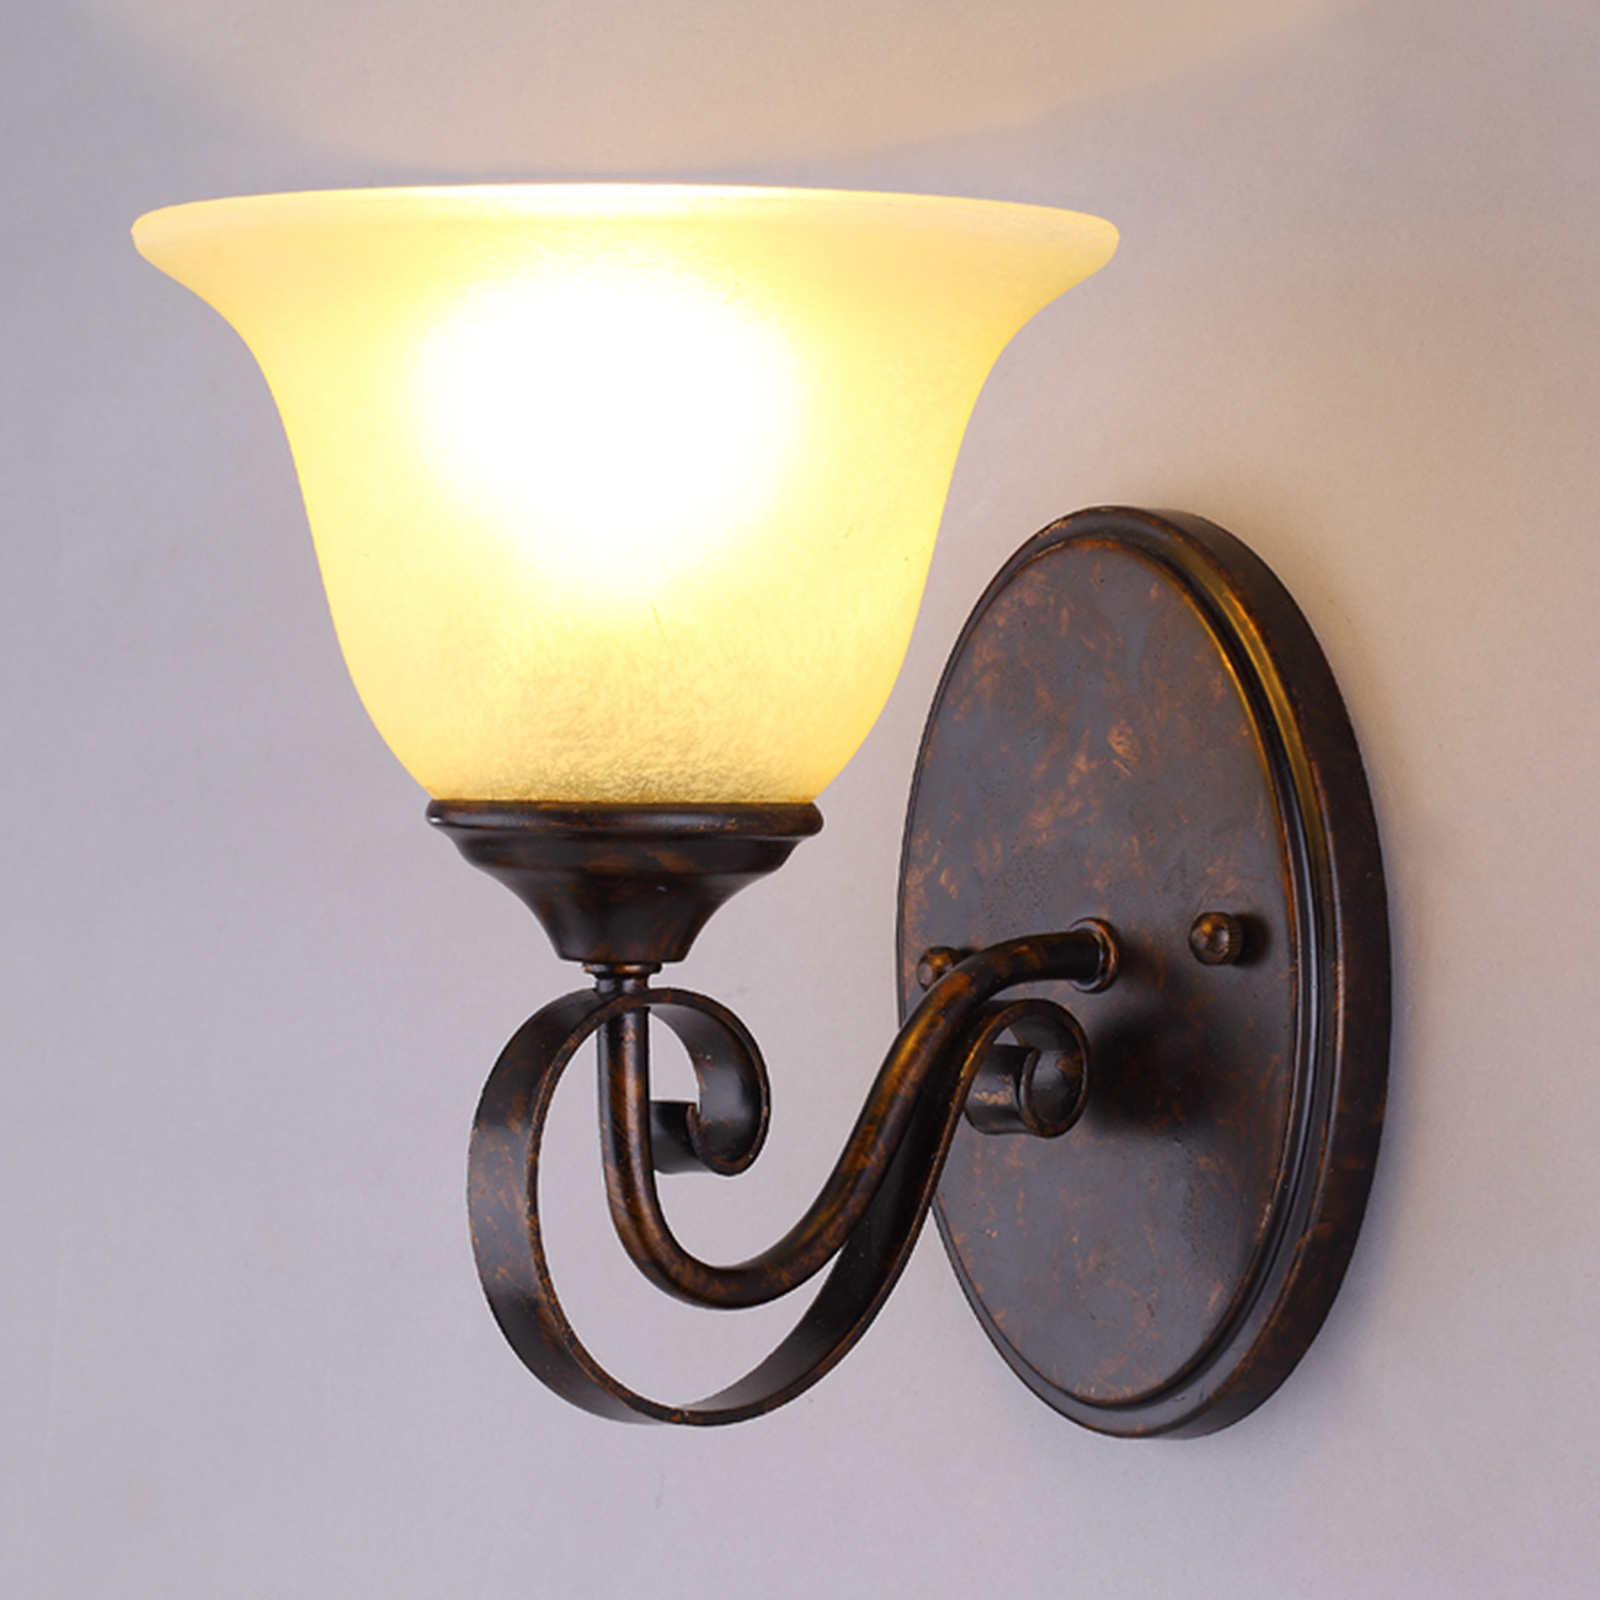 Wall lamp Svera in a country house style_9620540_1